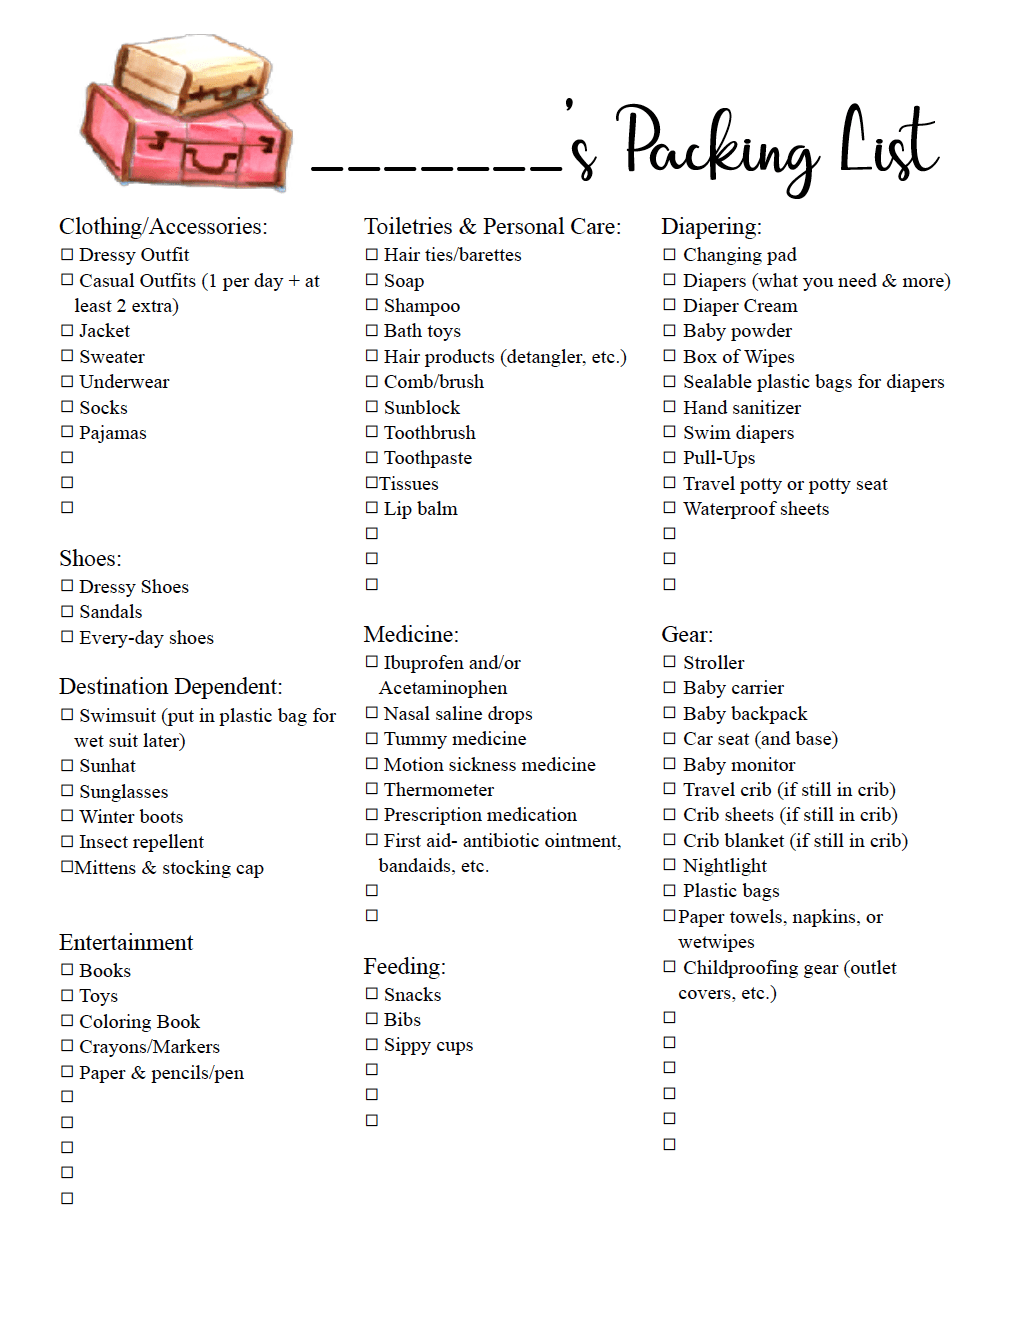 Free Printable Travel Packing List for Toddlers. A free printable checklist of the all the essentials you need for traveling with a toddler. #travel #packlist #packinglist #traveling #toddler